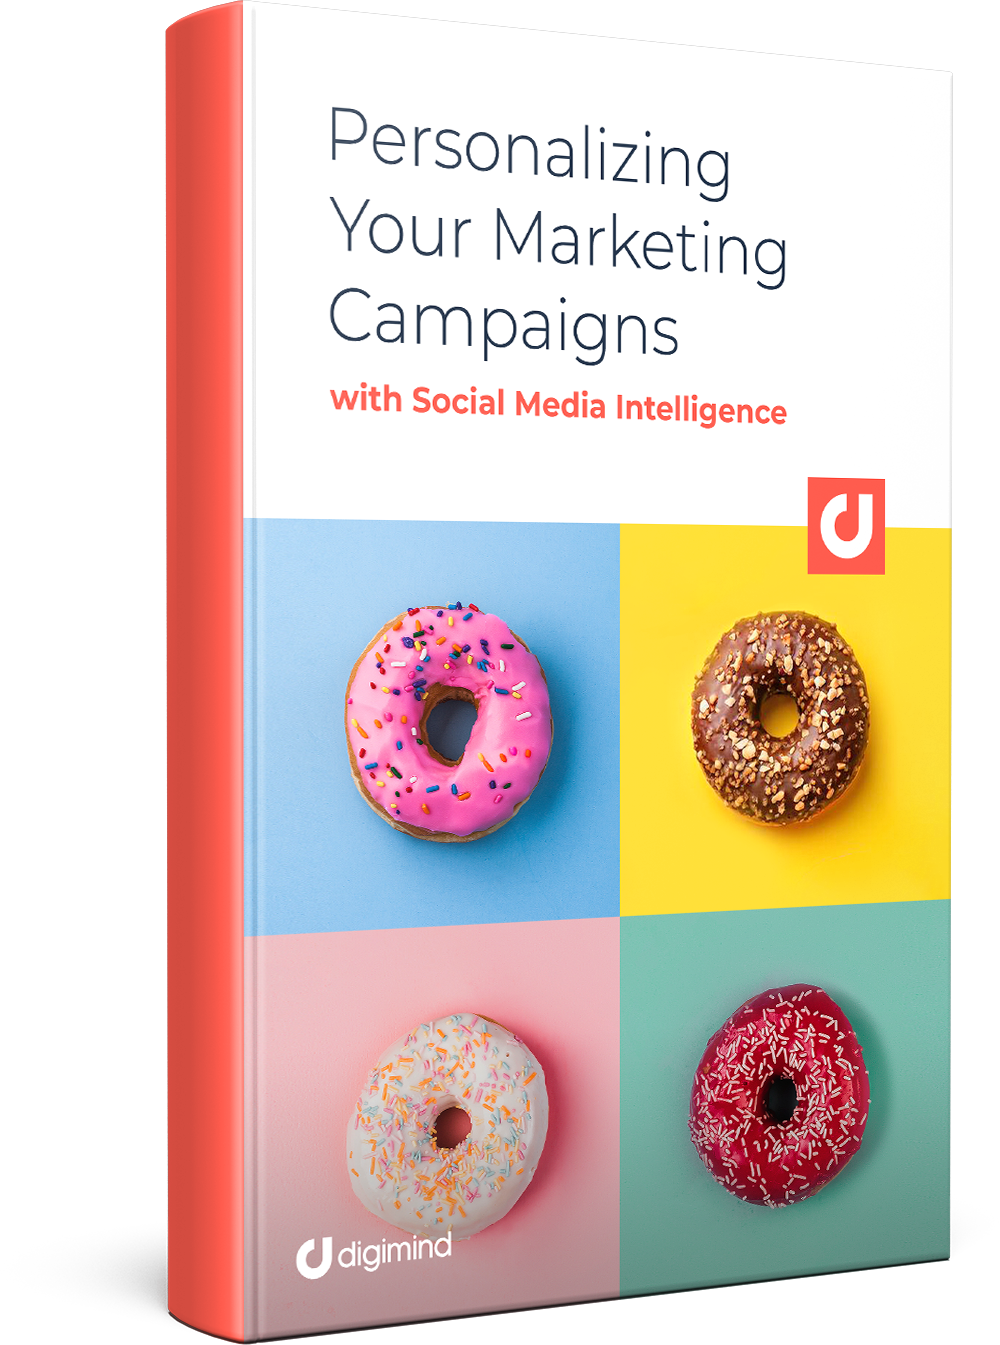 APAC - Personalizing Your Marketing Campaigns with Social Media Intelligence_3D BOOK